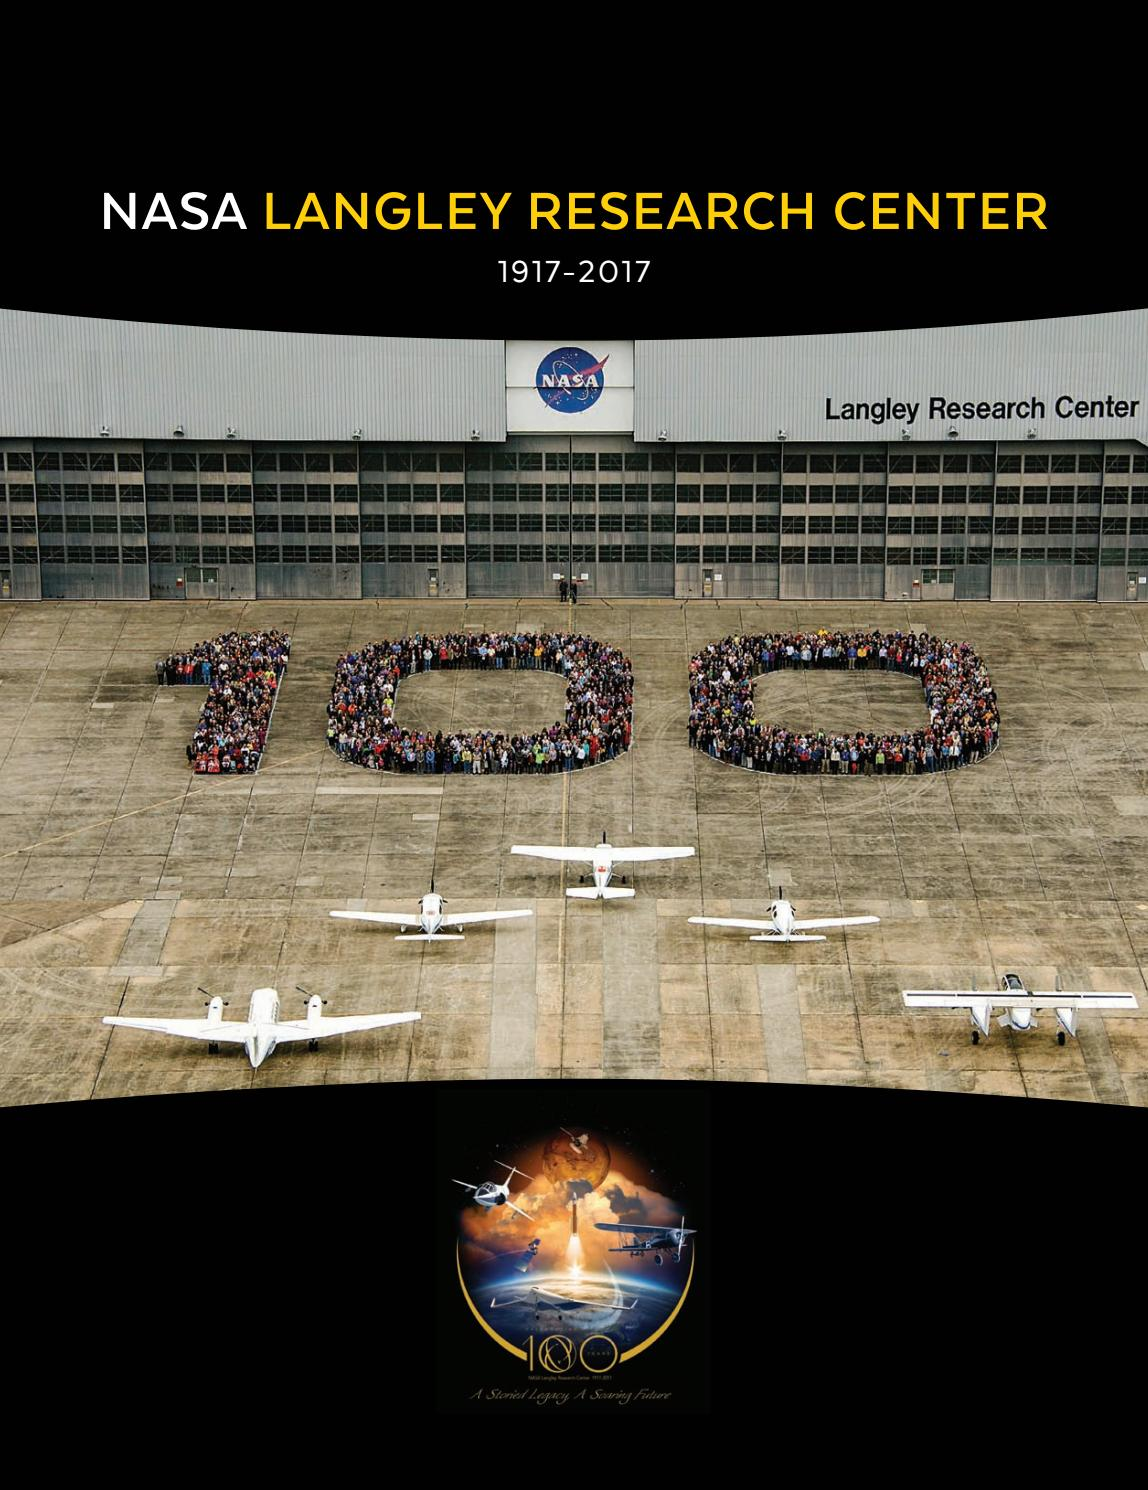 Nasa Langley Research Center 1917 2017 By Faircount Media Group Issuu Infrared Video Of A Hovering Lander